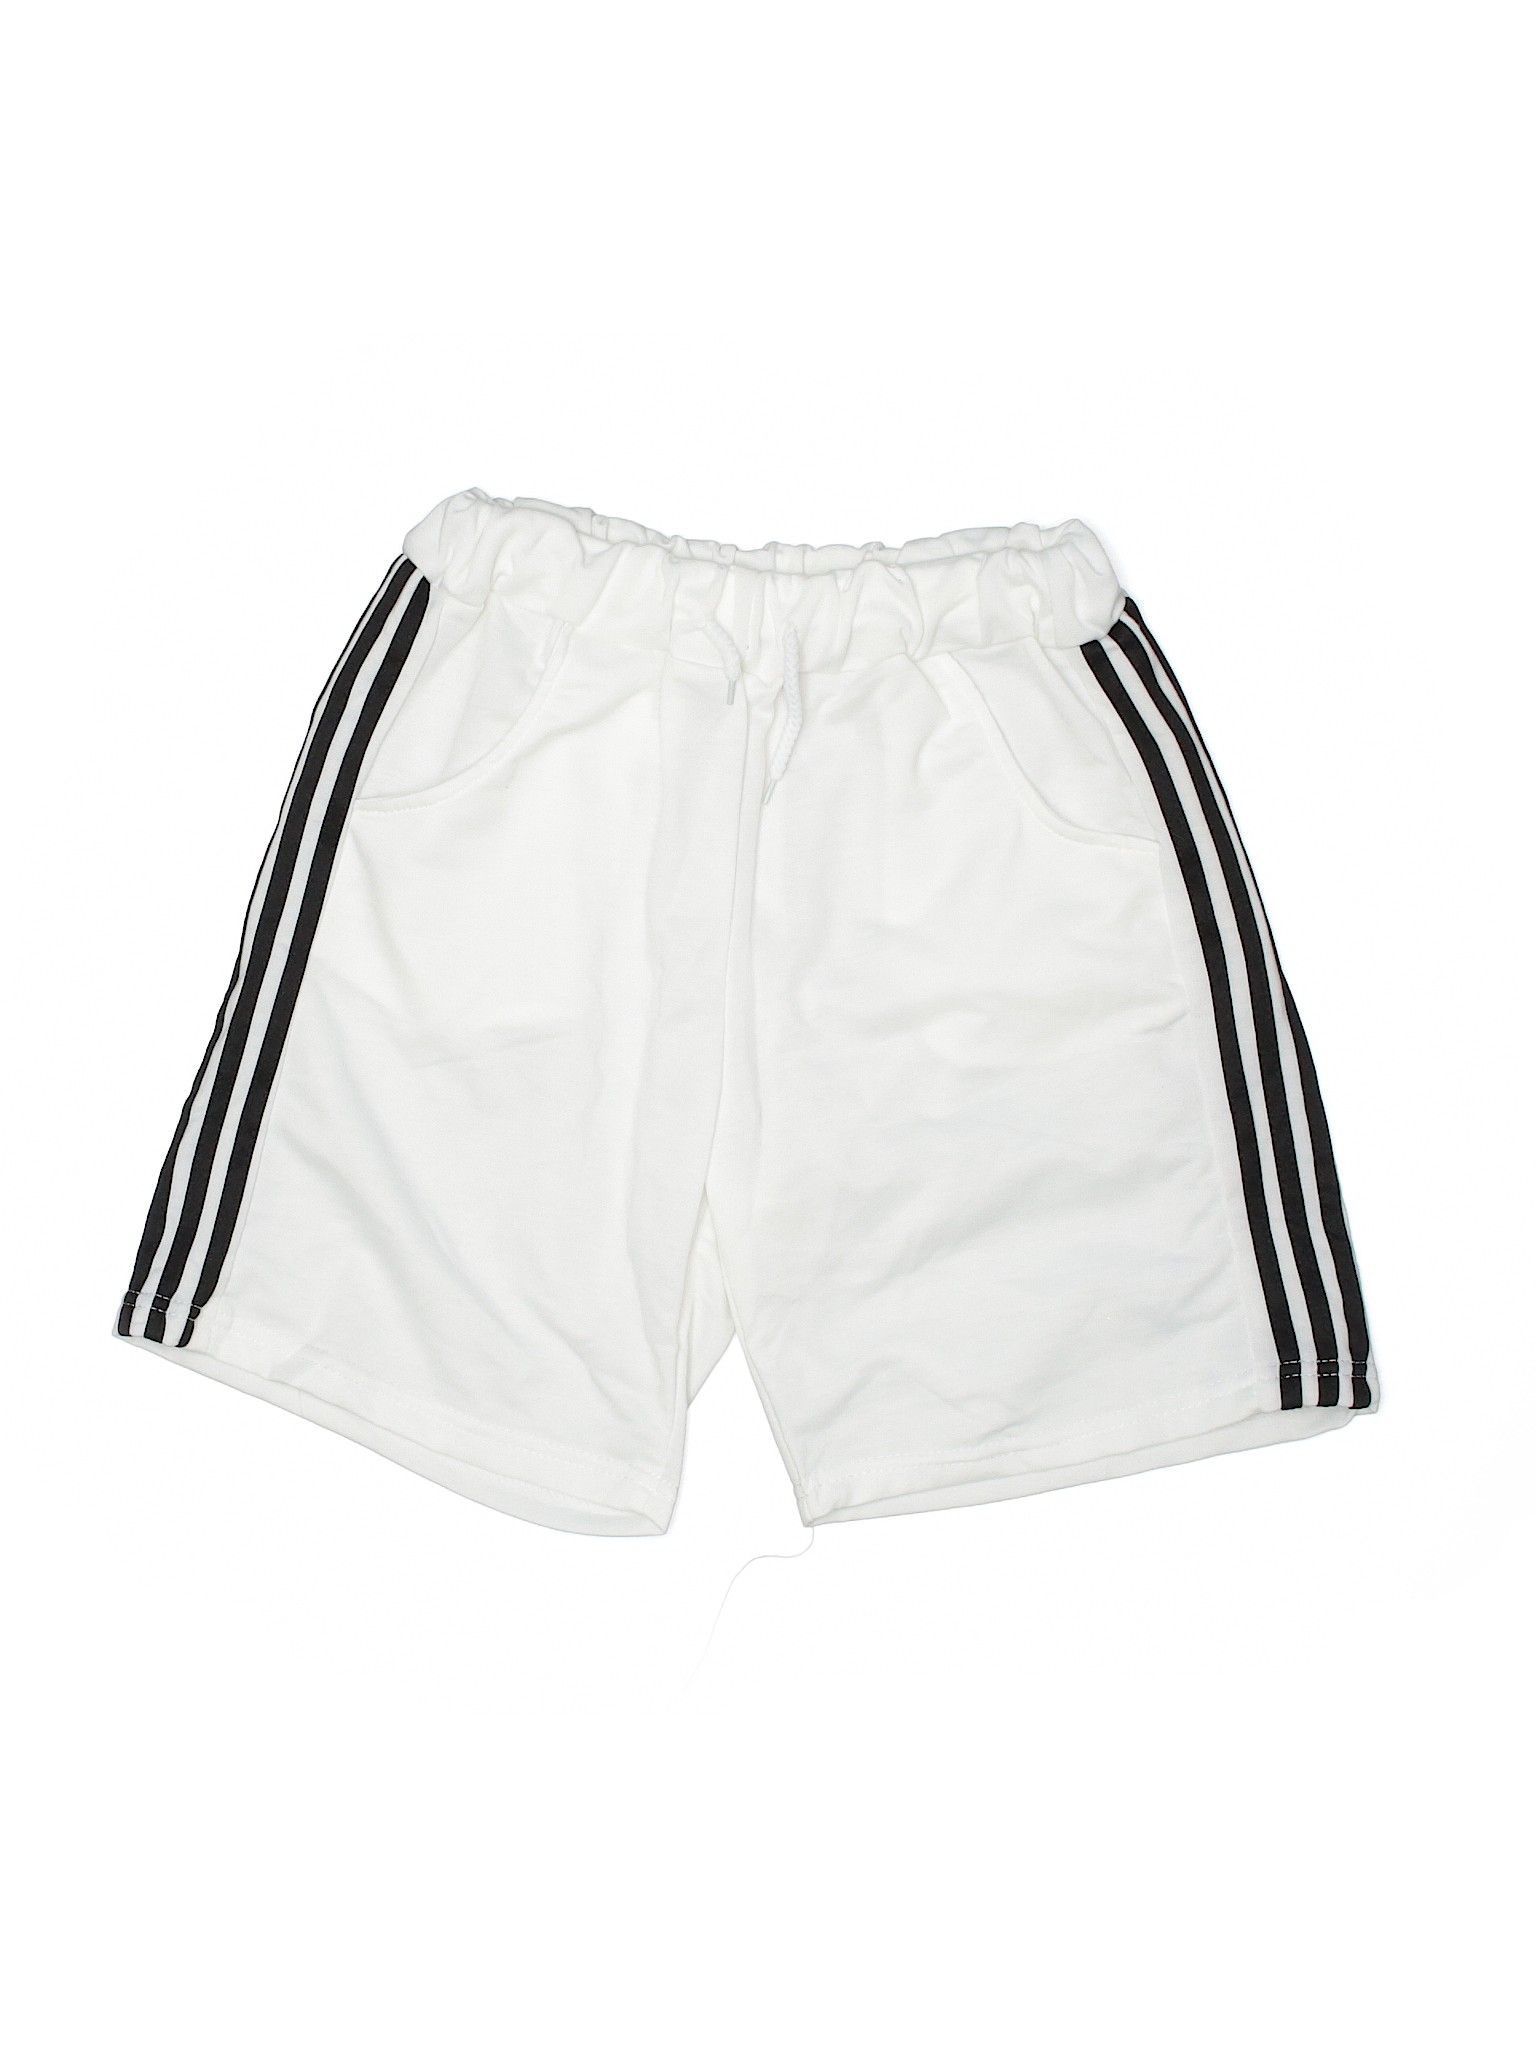 Short Youth Elastic White Boy S Bottoms Size Small Second Hand Clothes Gym Shorts Womens Clothes